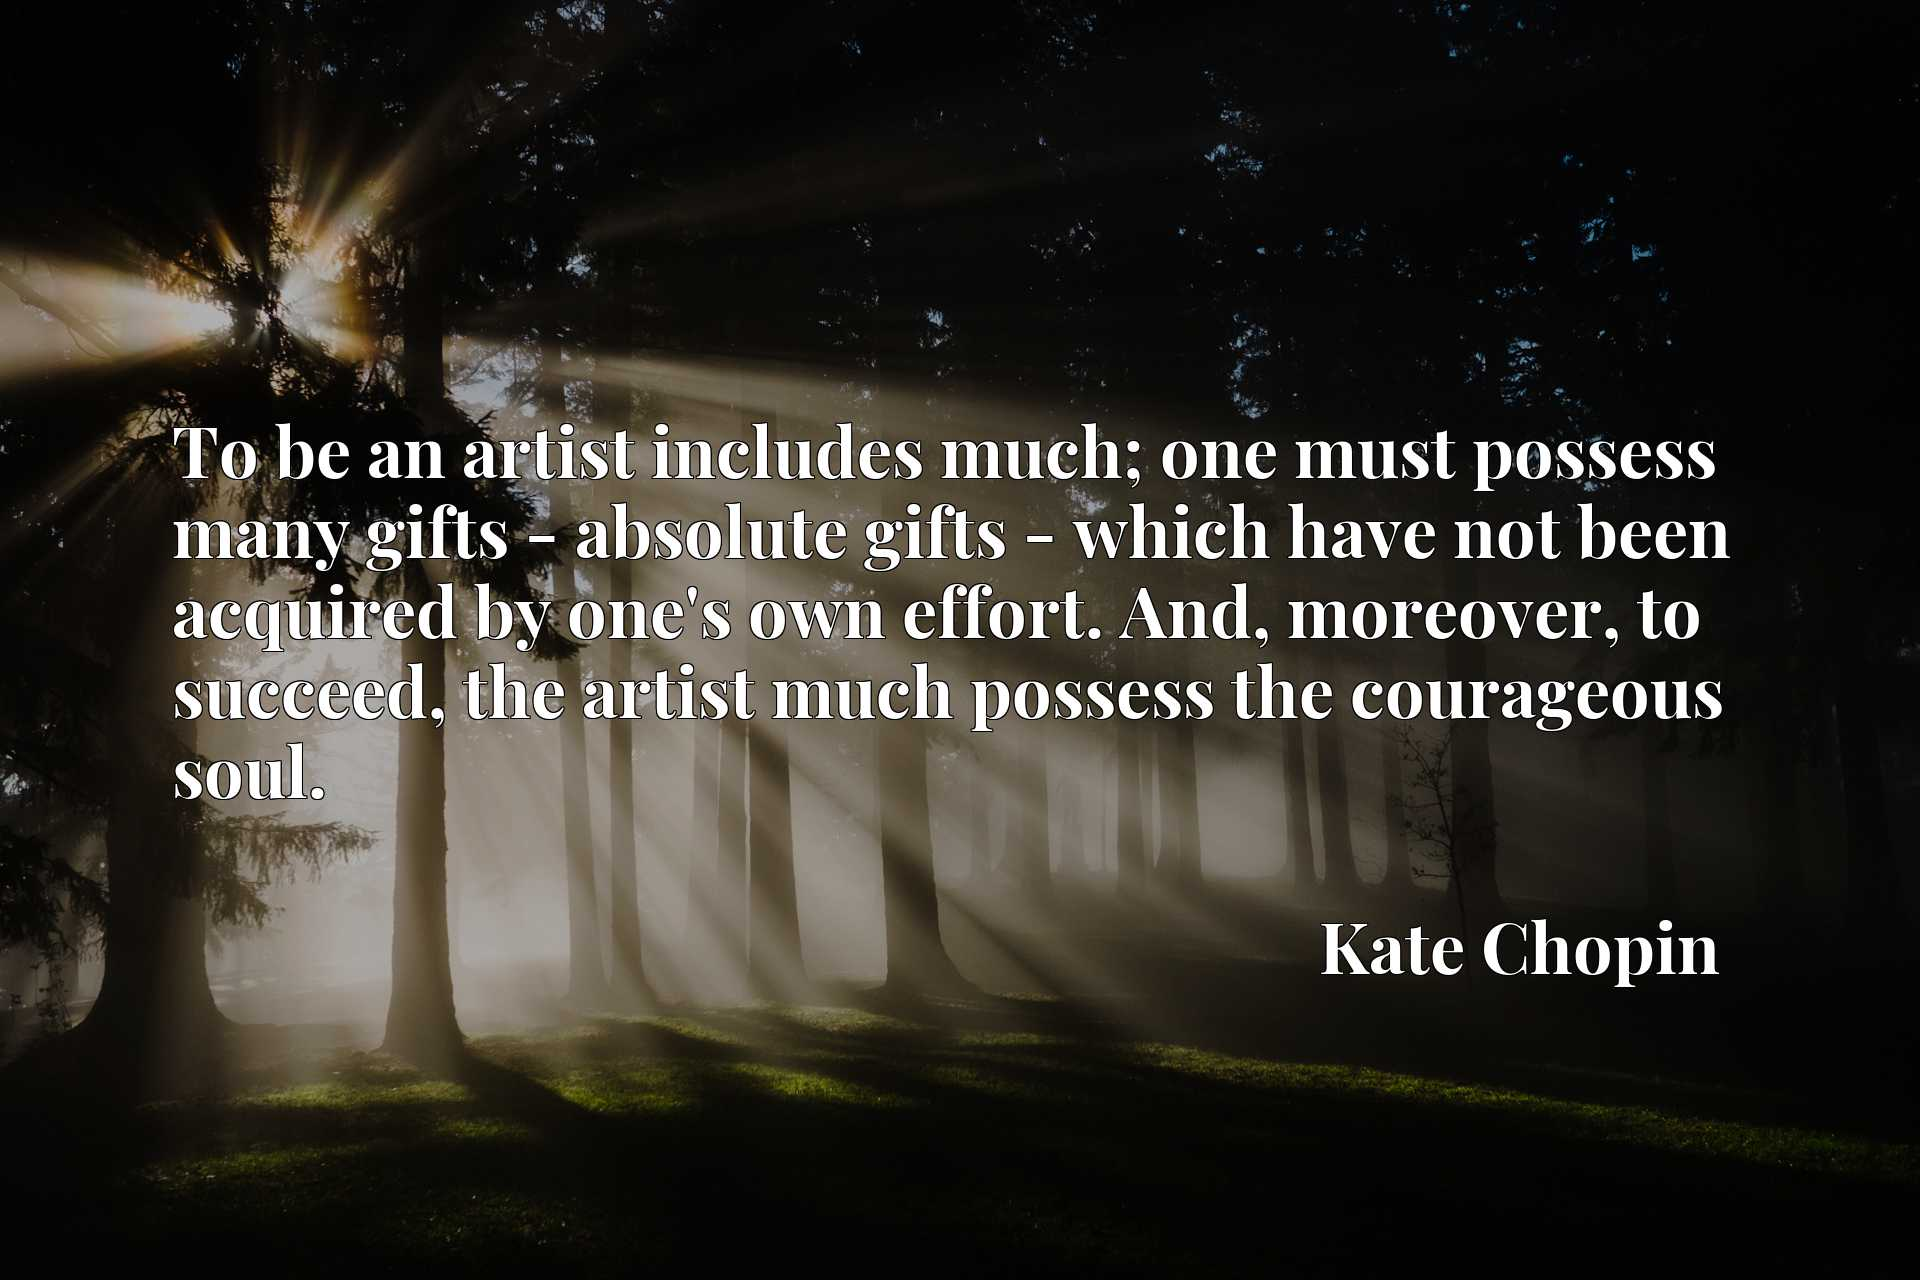 To be an artist includes much; one must possess many gifts - absolute gifts - which have not been acquired by one's own effort. And, moreover, to succeed, the artist much possess the courageous soul.